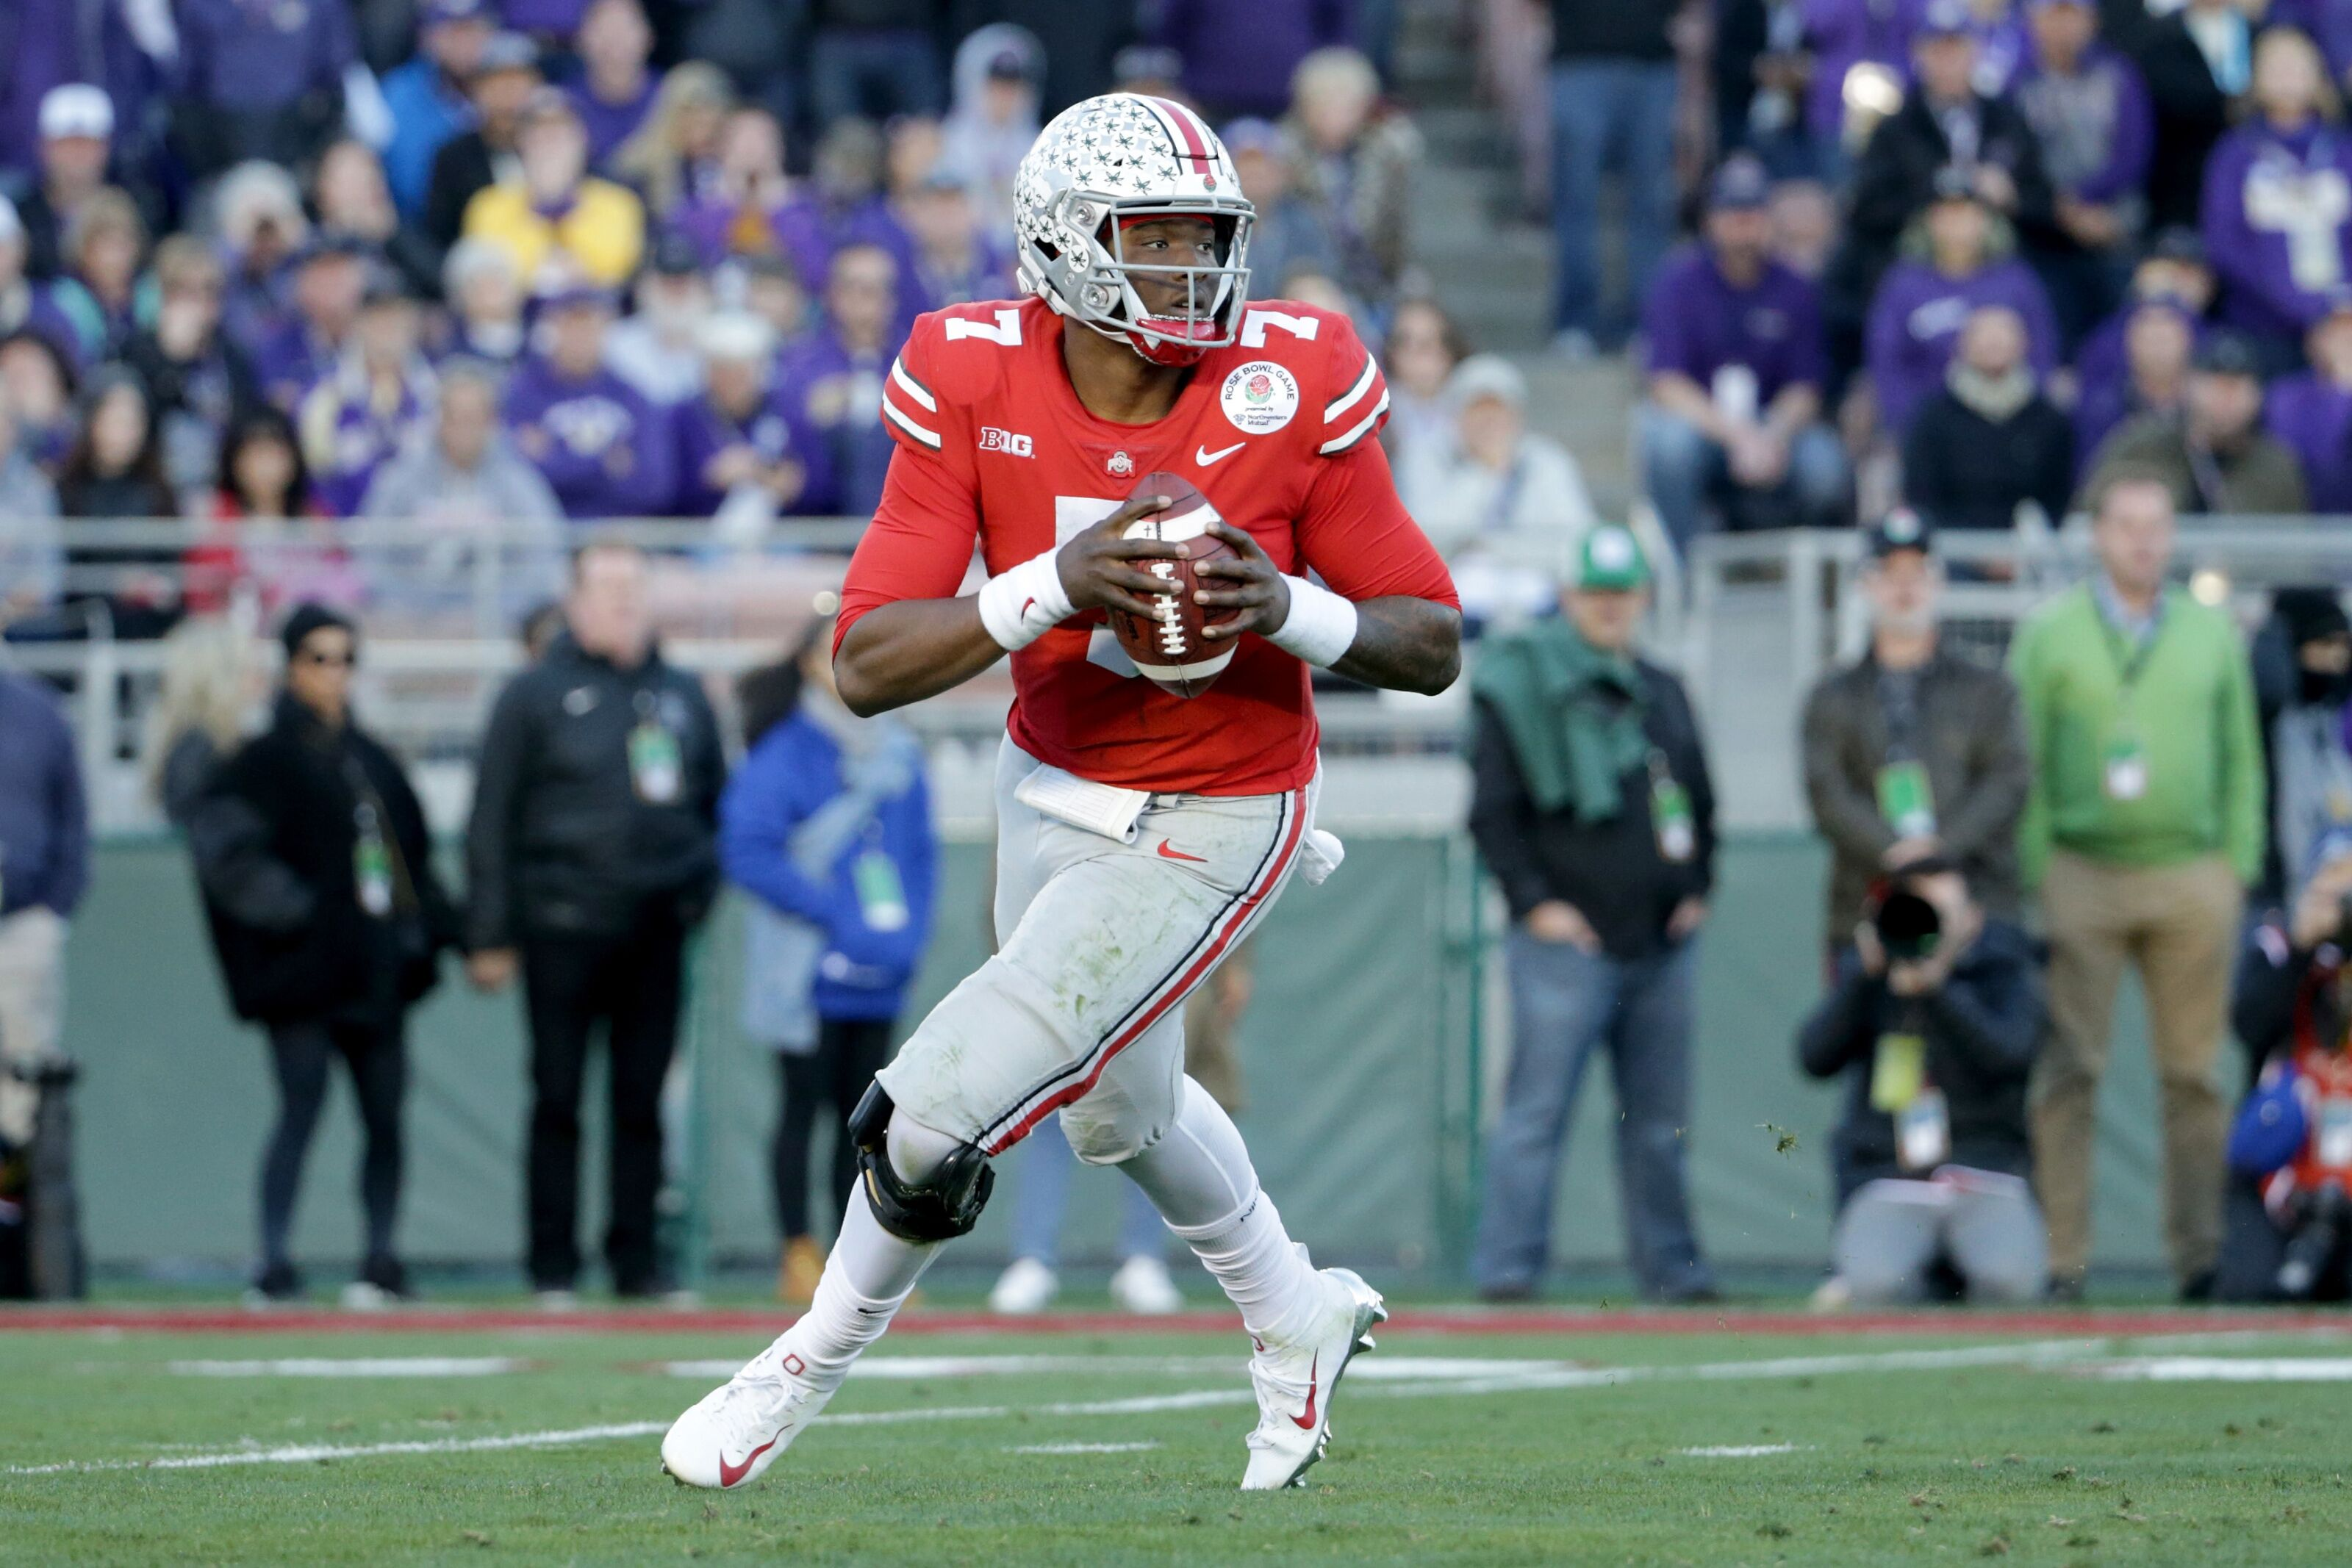 NFC East news: Giants meet with Dwayne Haskins, per report